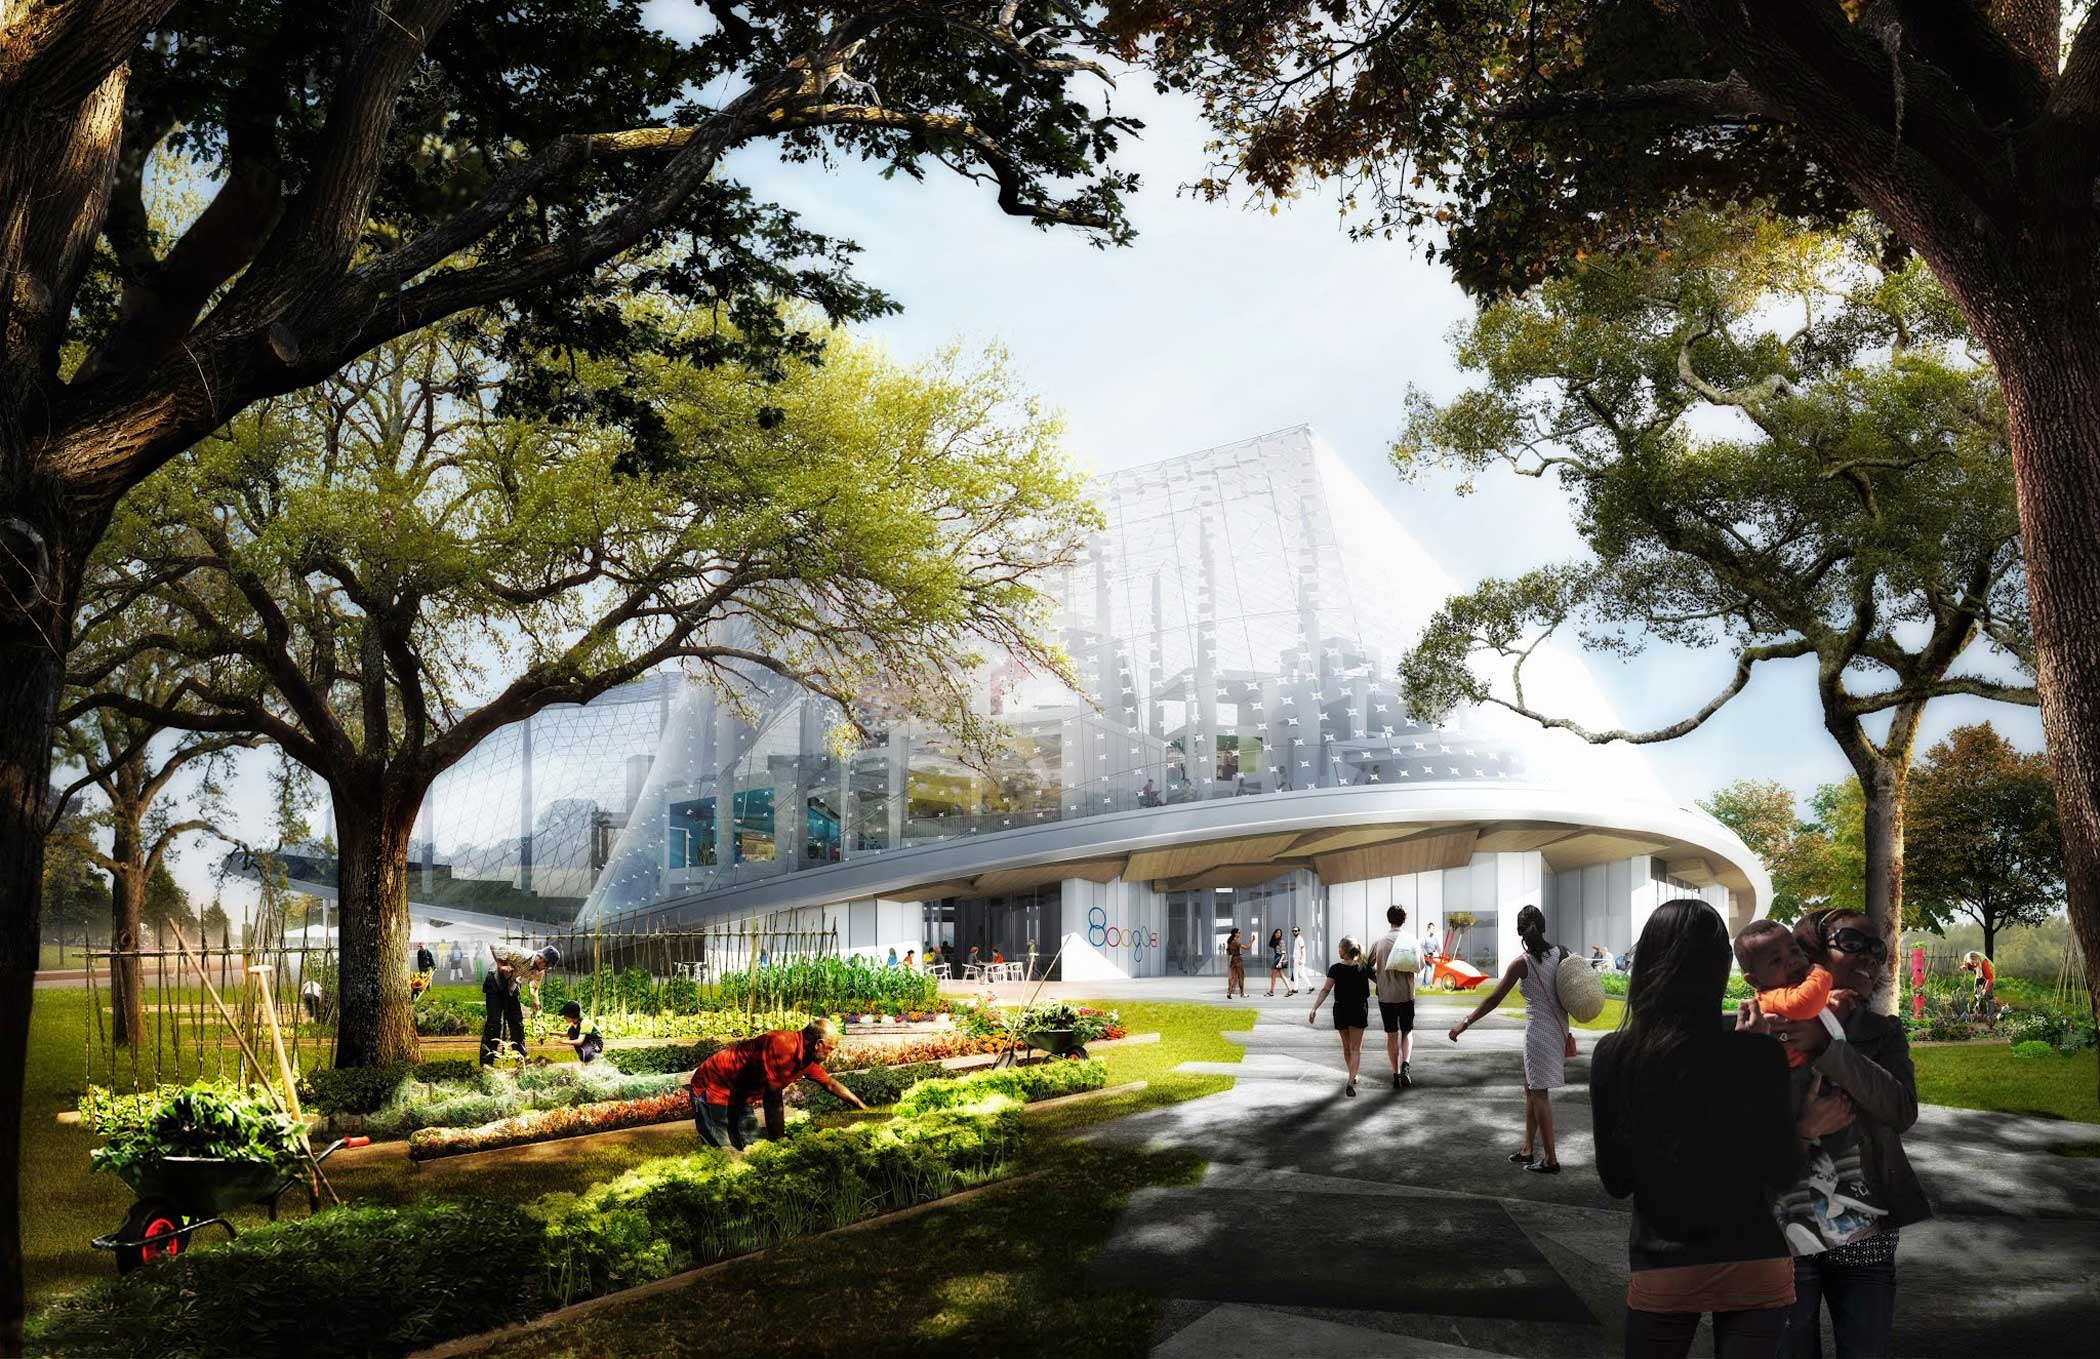 This rendering shows the west side of the proposed Huff project.                                                              At ground level, the environment is newly restored. Employees will be drawn from offices to the outdoors, to work alongside waterways and under trees. Mountain View residents can walk or ride along green corridors, eat at cafes, shop, play in parks, or work in the public community gardens.